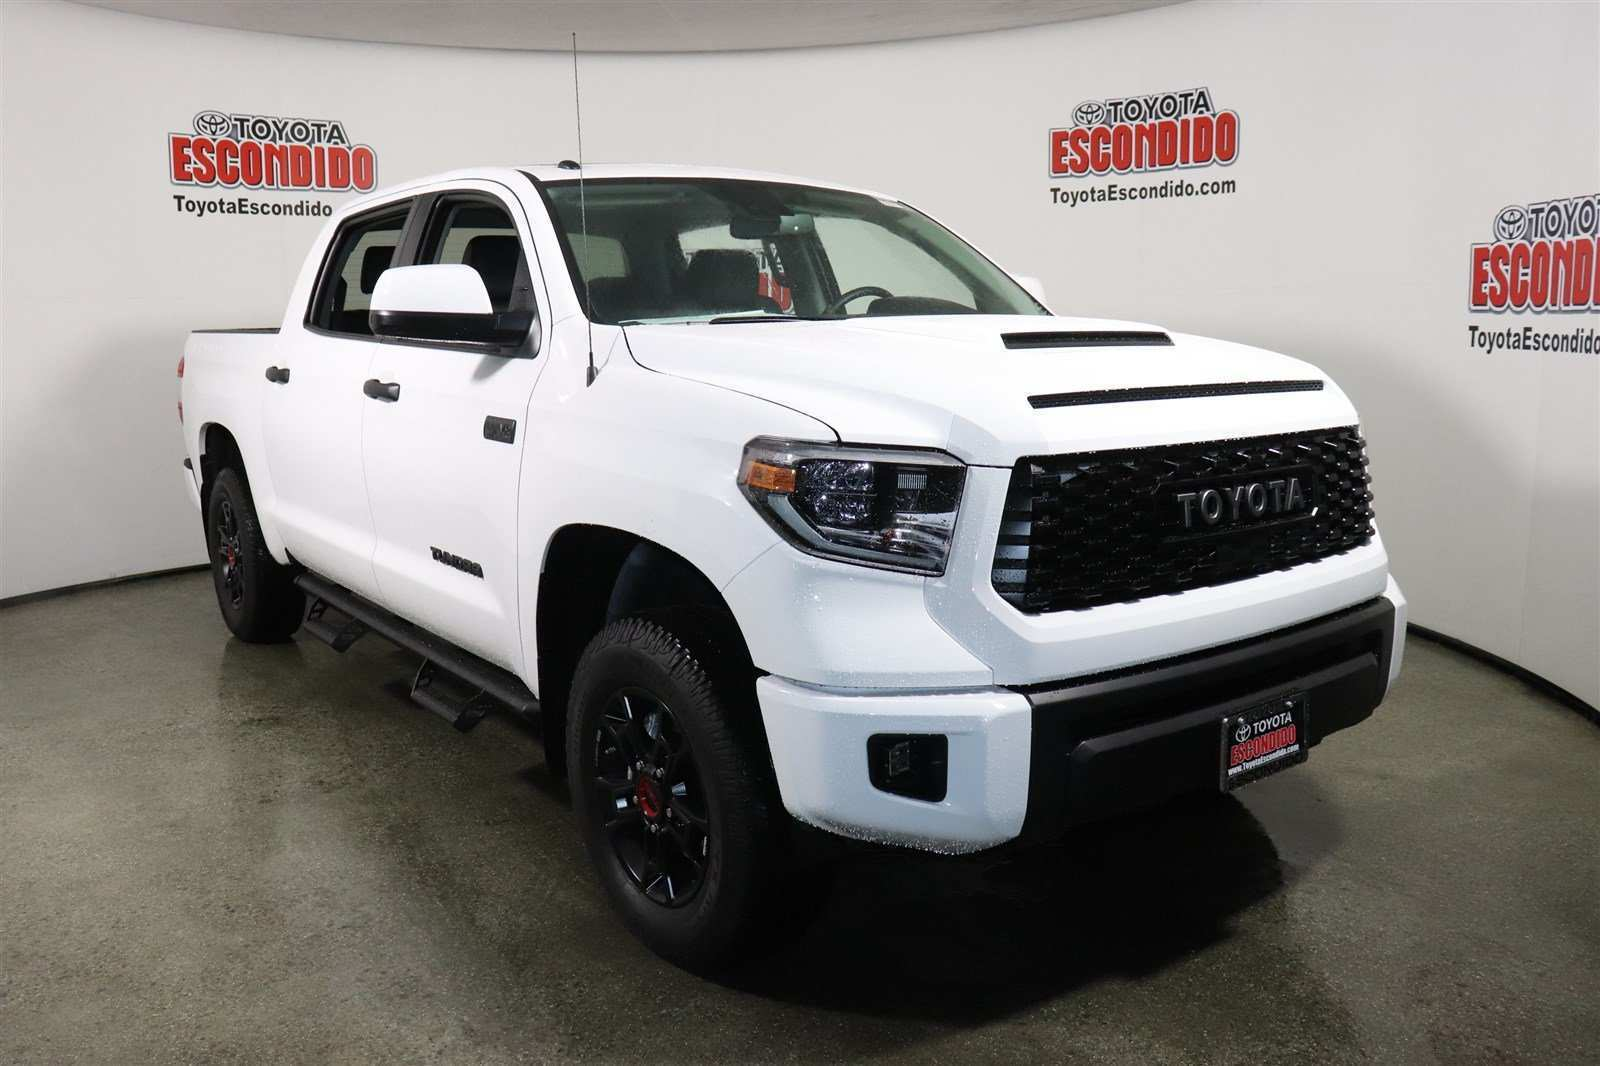 88 Gallery of Toyota Tundra Trd Pro 2019 Redesign with Toyota Tundra Trd Pro 2019